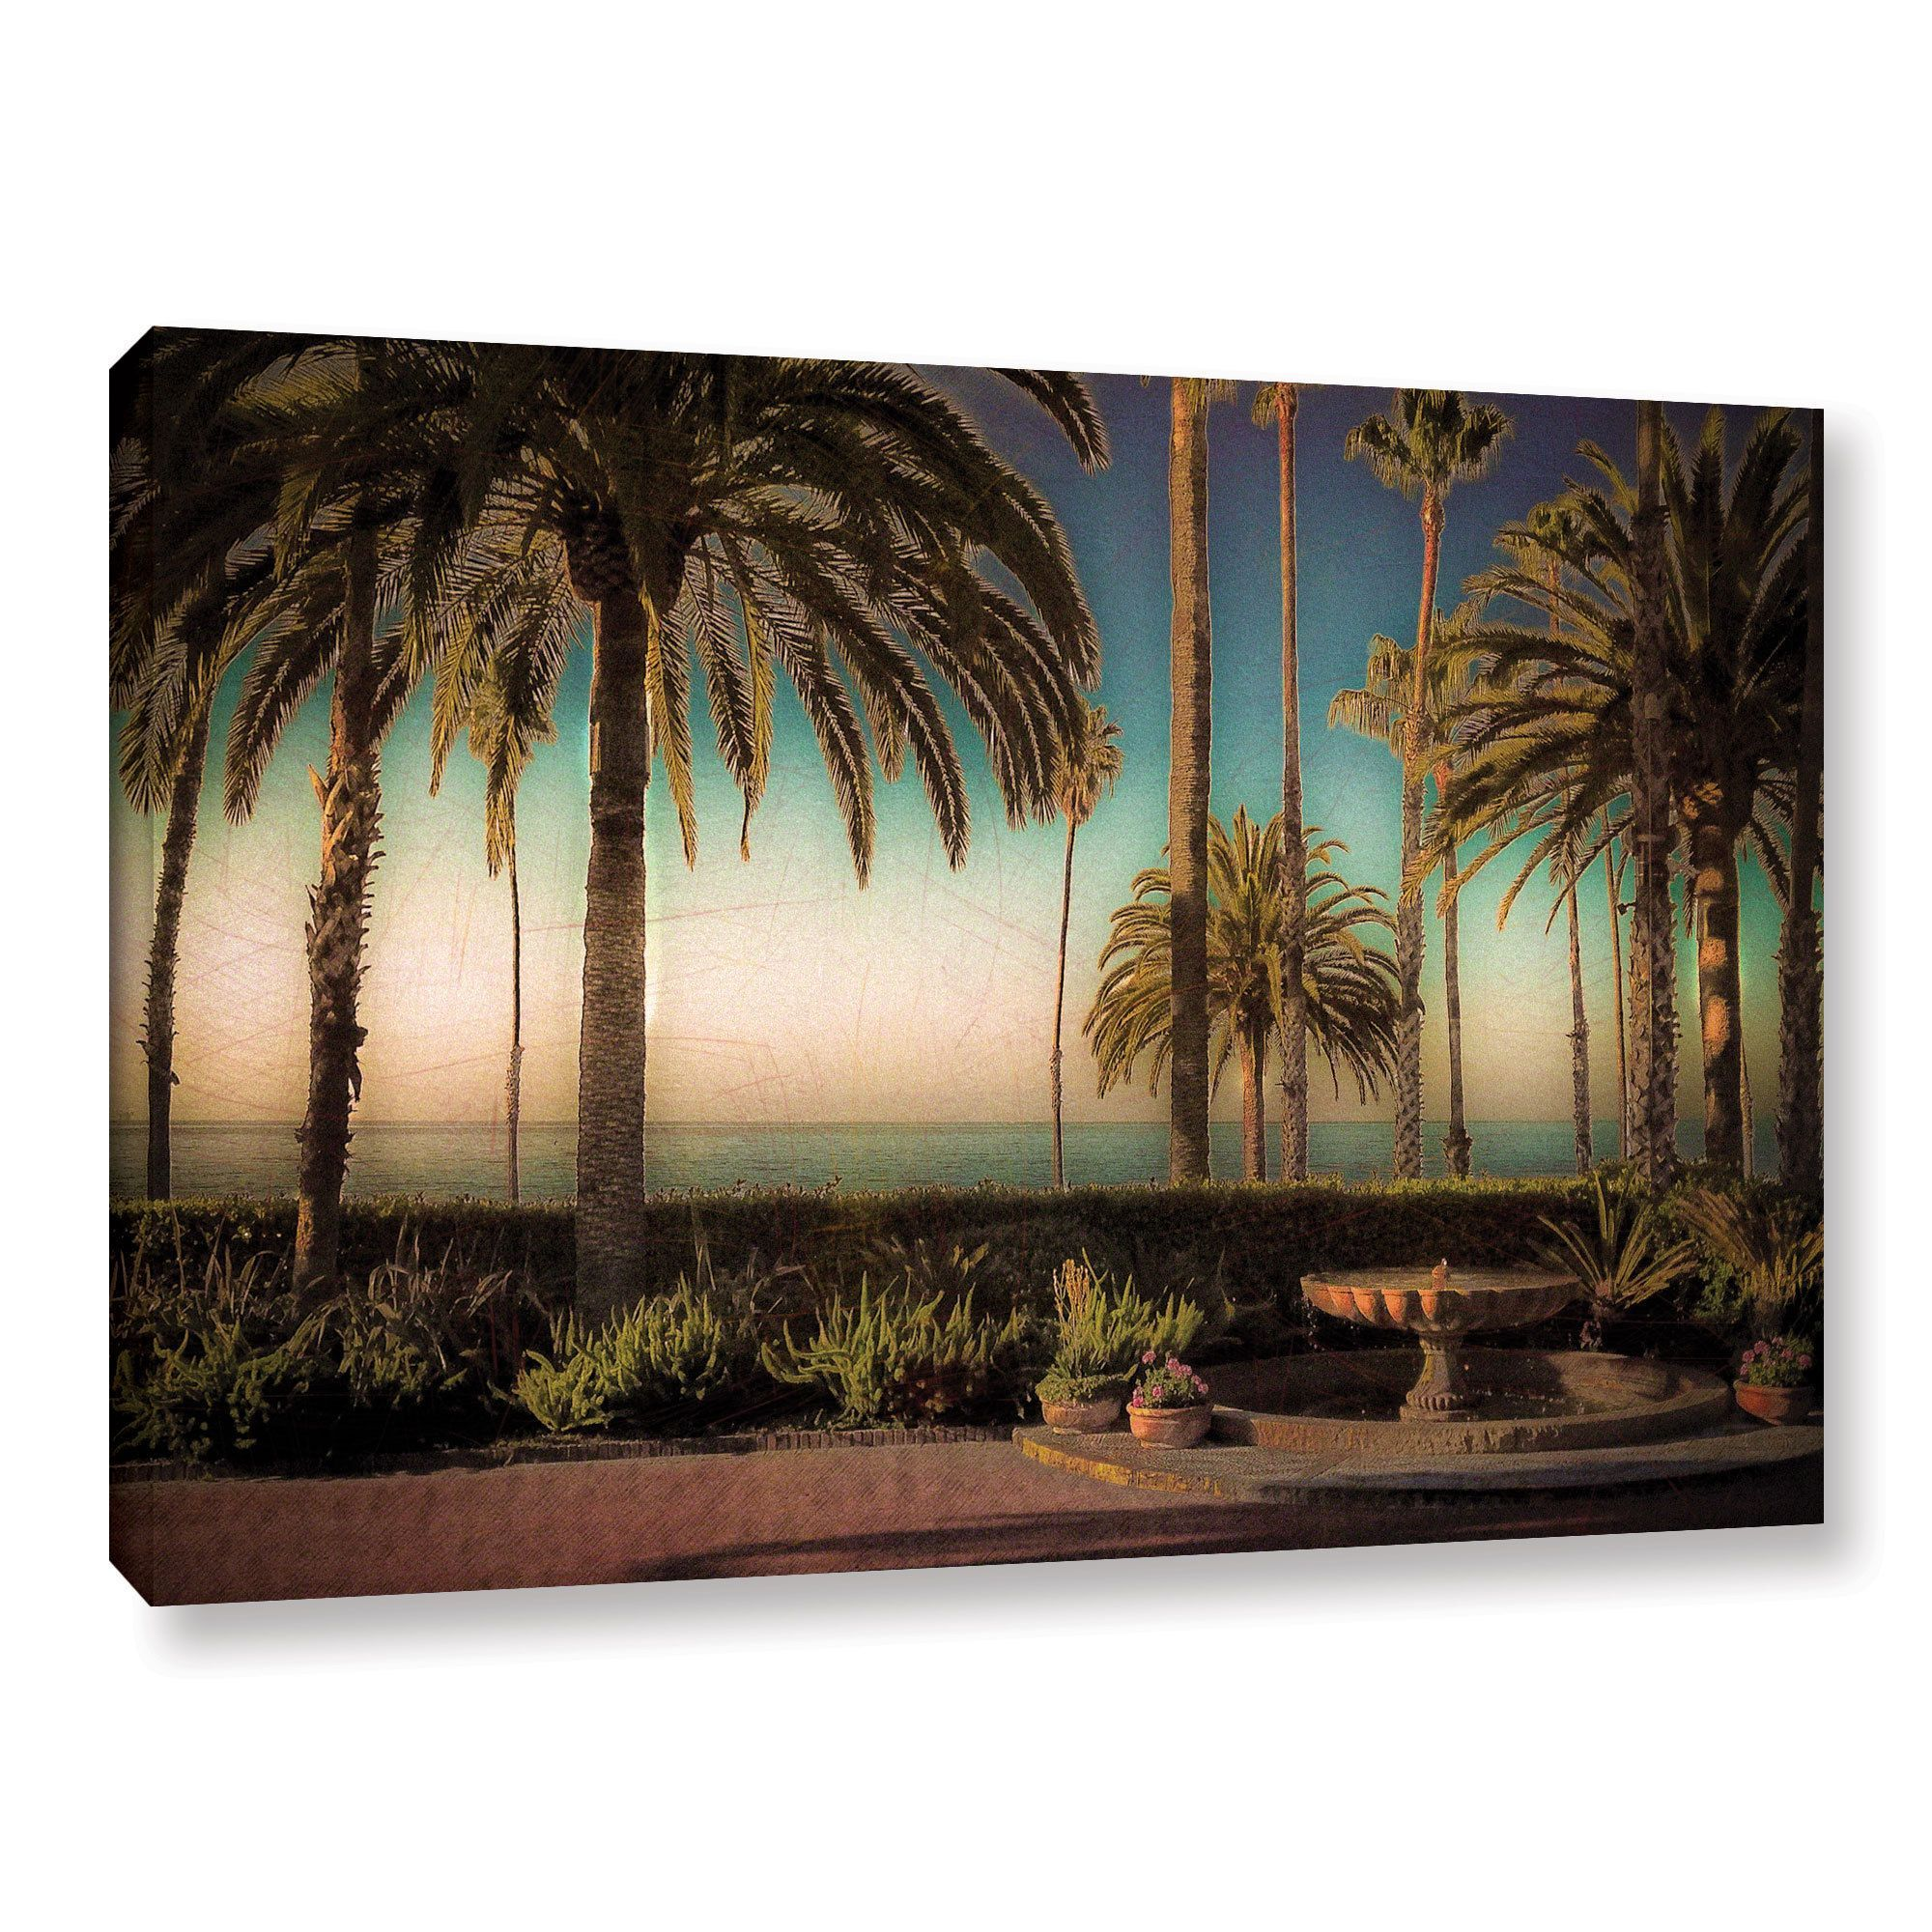 ArtWall Richard James's 'Bowmans View' Gallery Wrapped Canvas